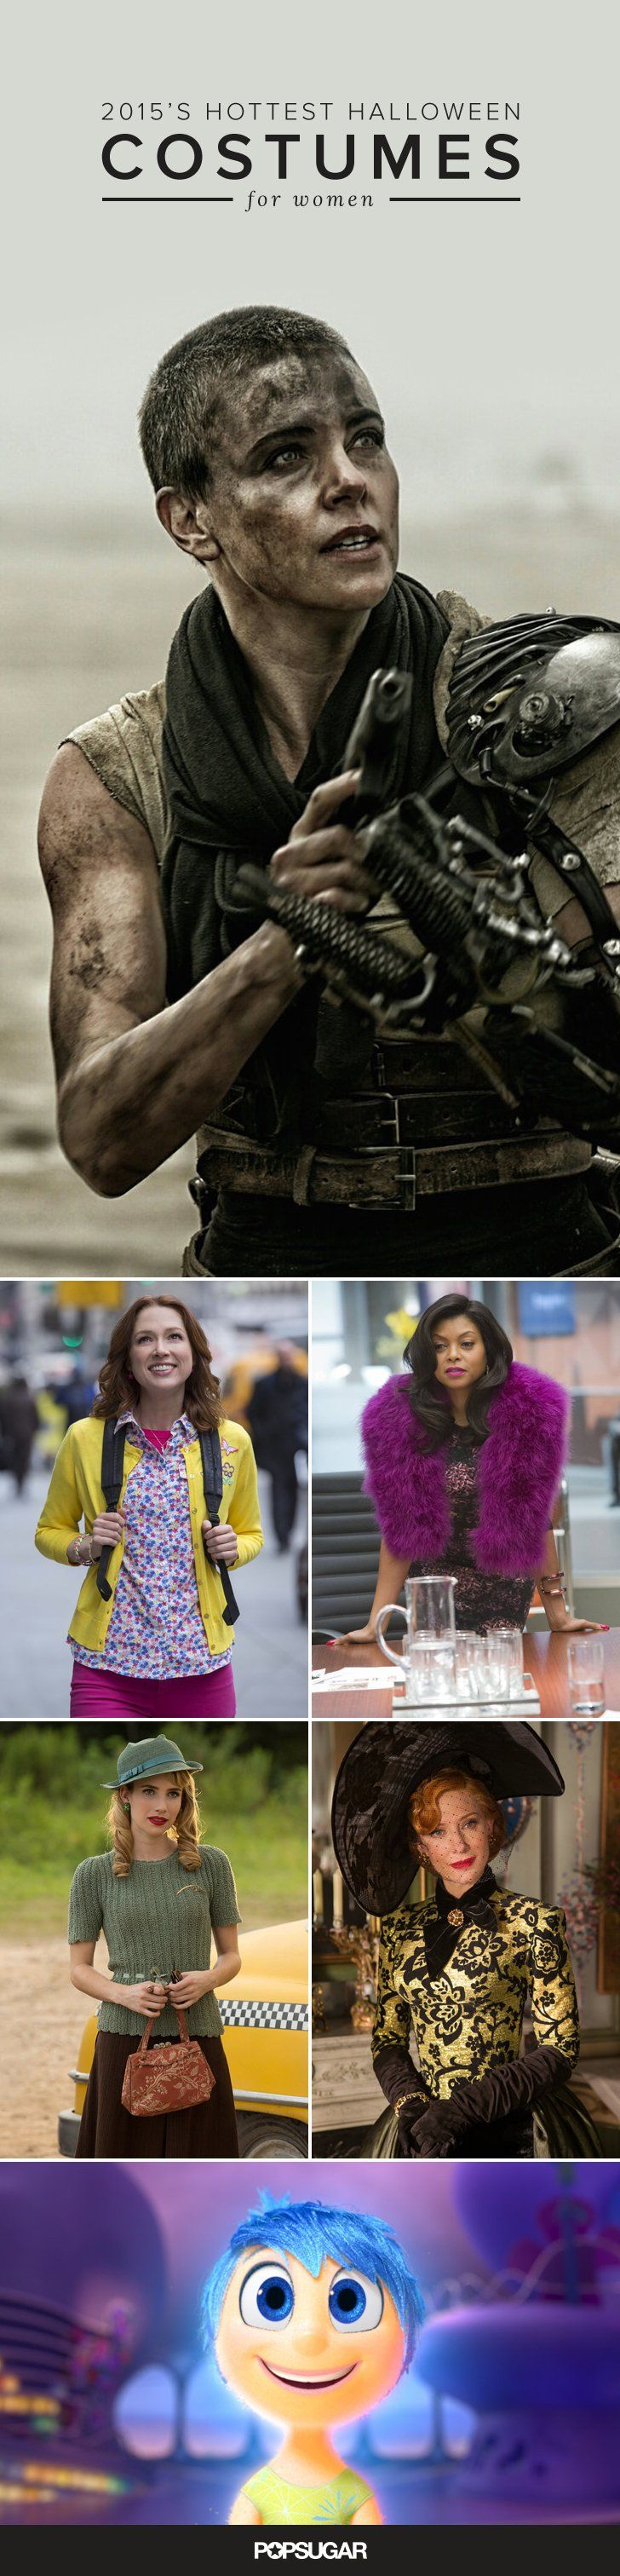 Pin for Later: This Year's Hottest Pop Culture Halloween Costumes For Women Halloween Costume Ideas For Women